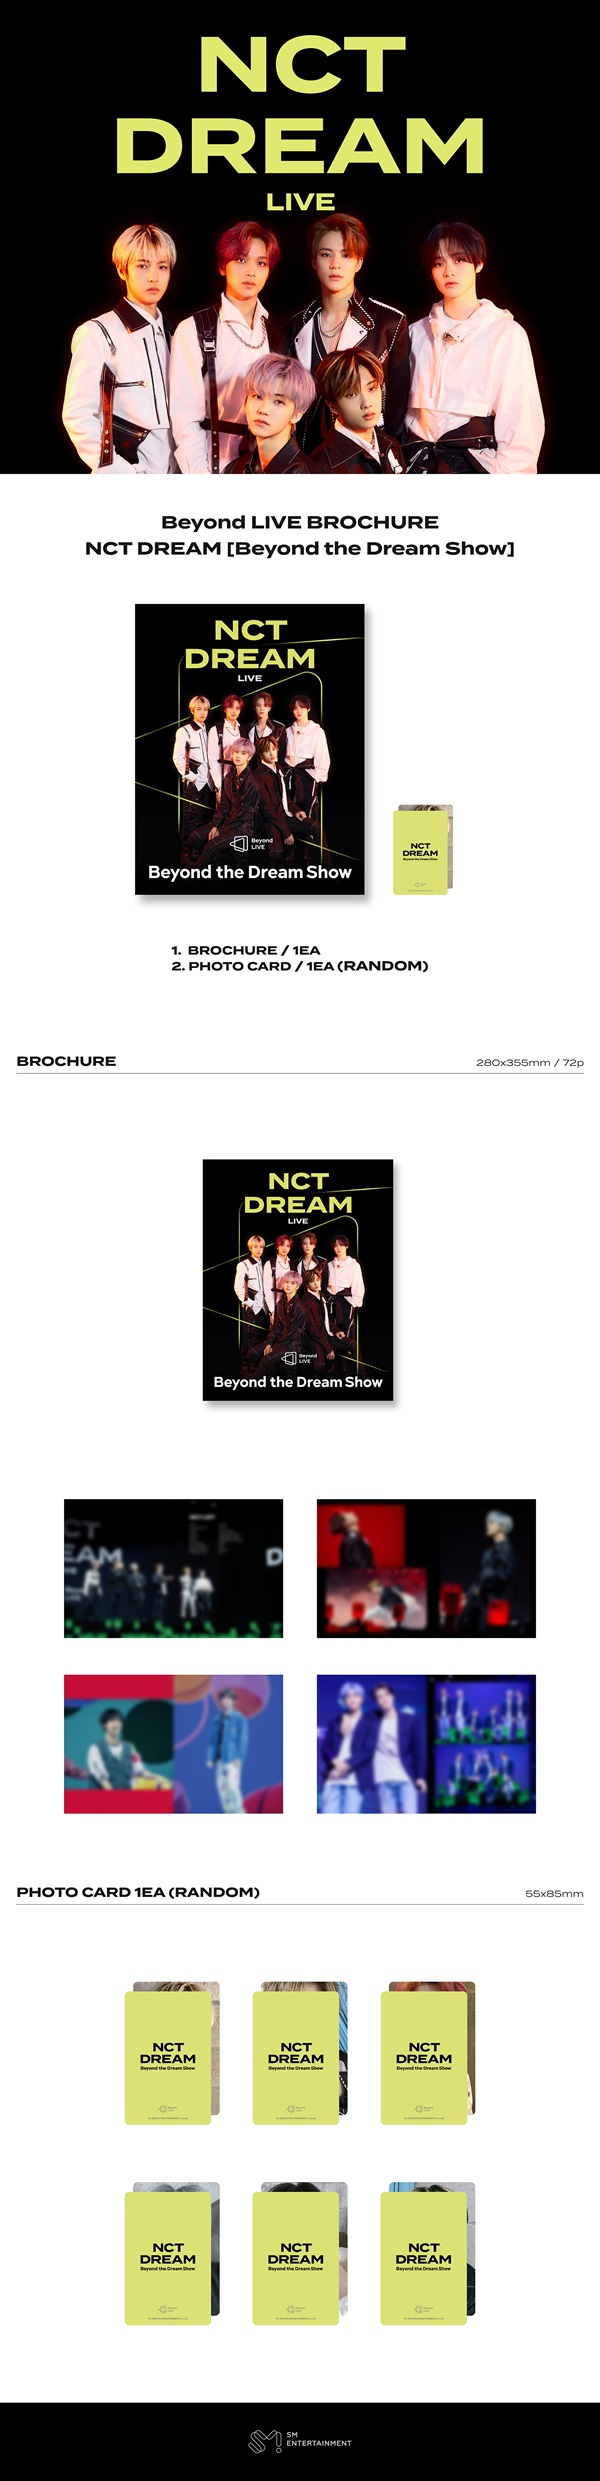 NCT_3